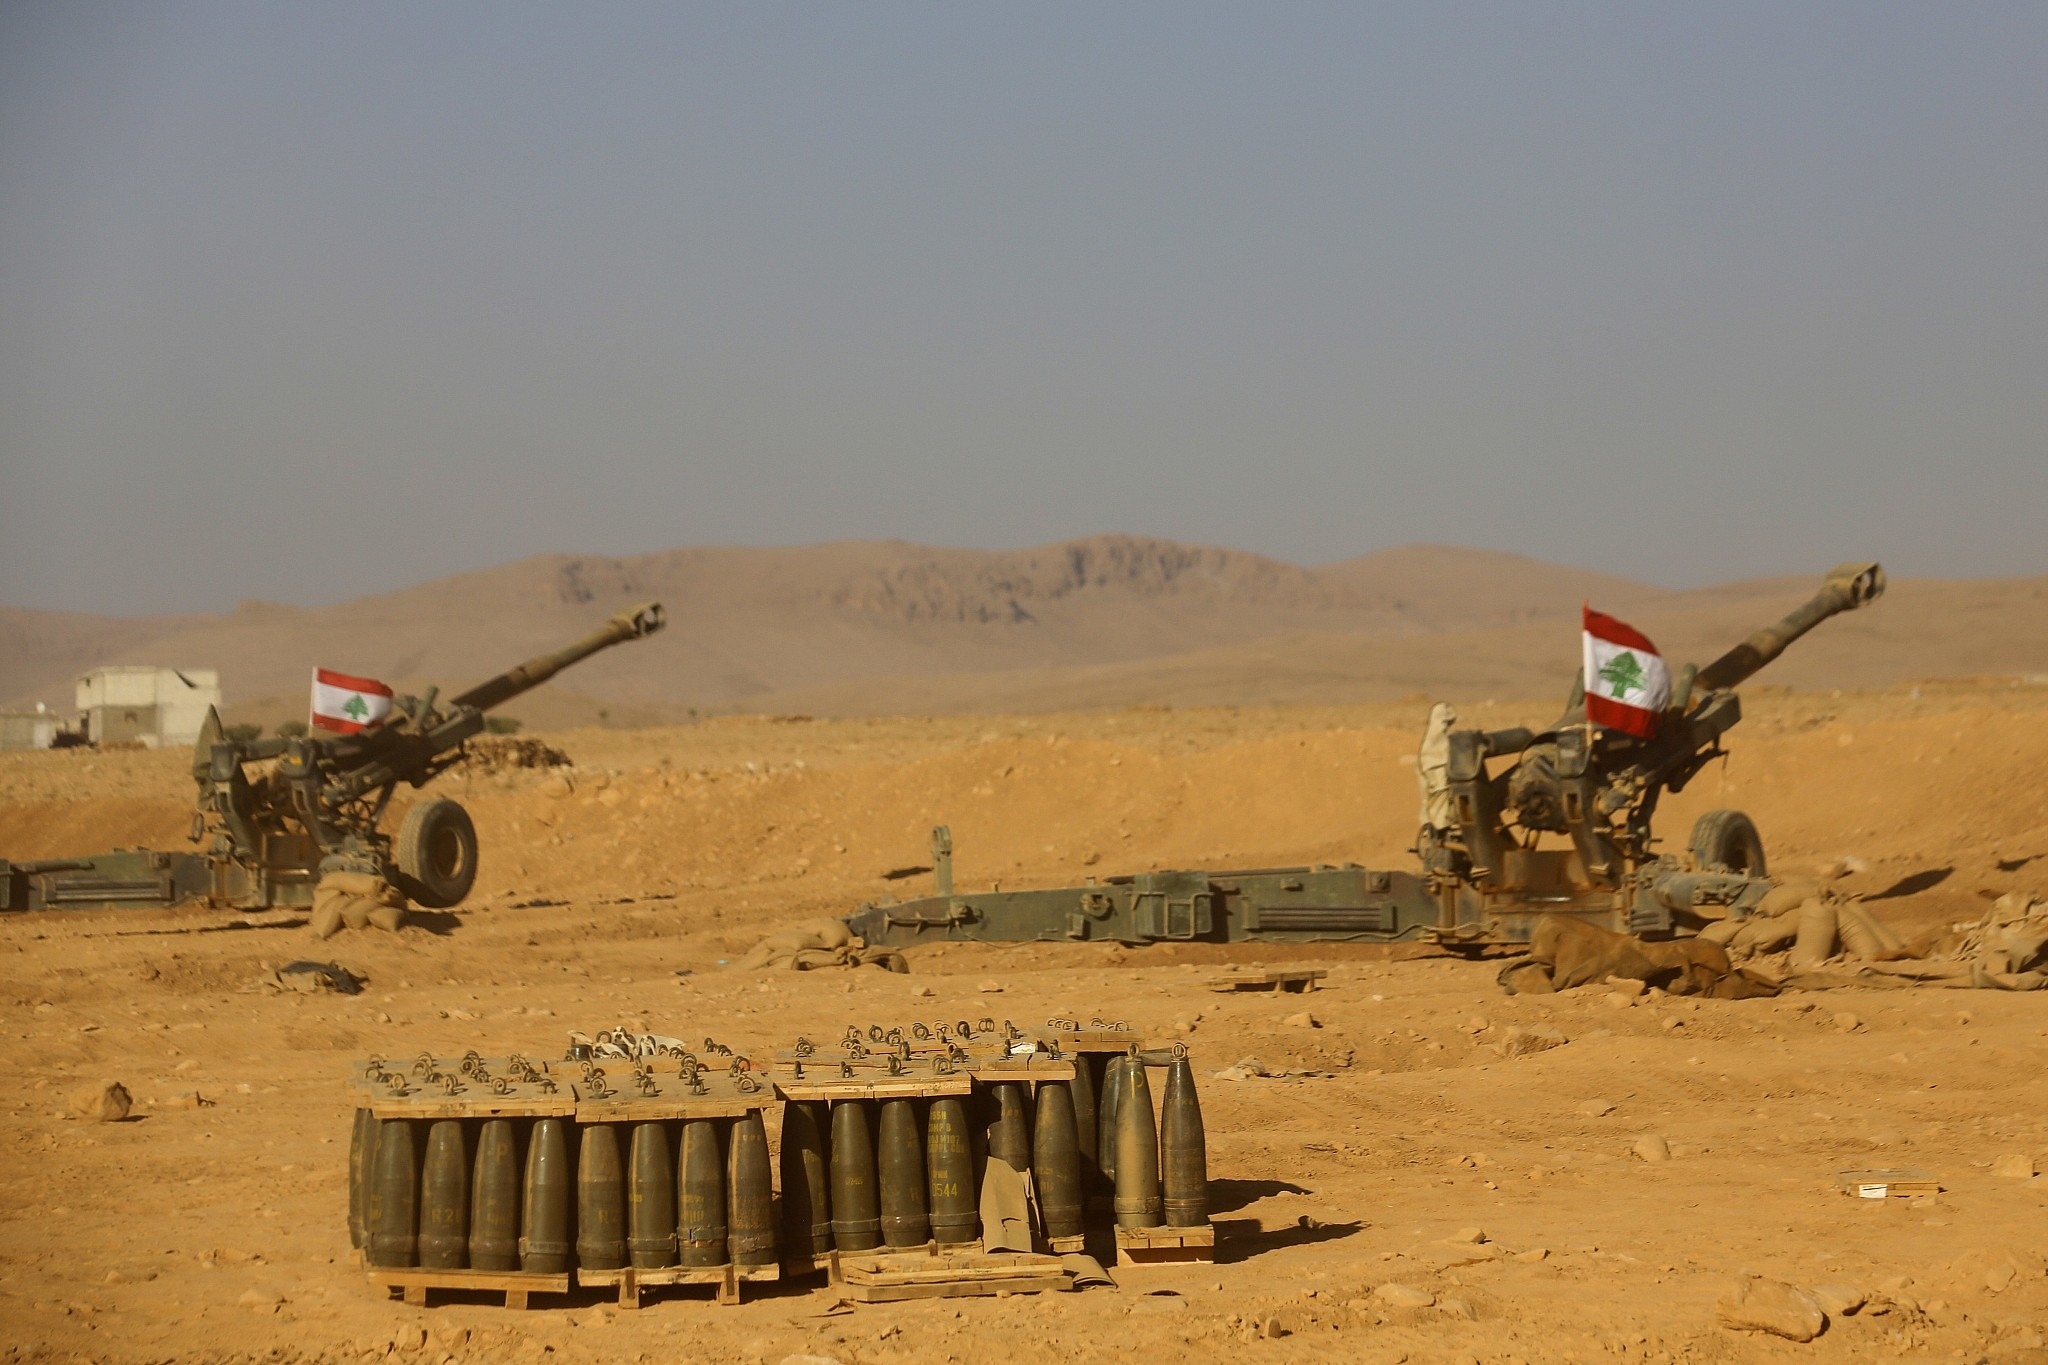 Lebanese national flags are set on the top of cannons inside a base during a media trip organized by the Lebanese army, on the outskirts of Ras Baalbek, northeast Lebanon, Monday, Aug. 28, 2017. Lebanon's Hezbollah TV is reporting that Islamic State militants started leaving the border area with Syria on Monday as part of a negotiated deal to end the extremist group's presence there. (AP Photo/Hassan Ammar)